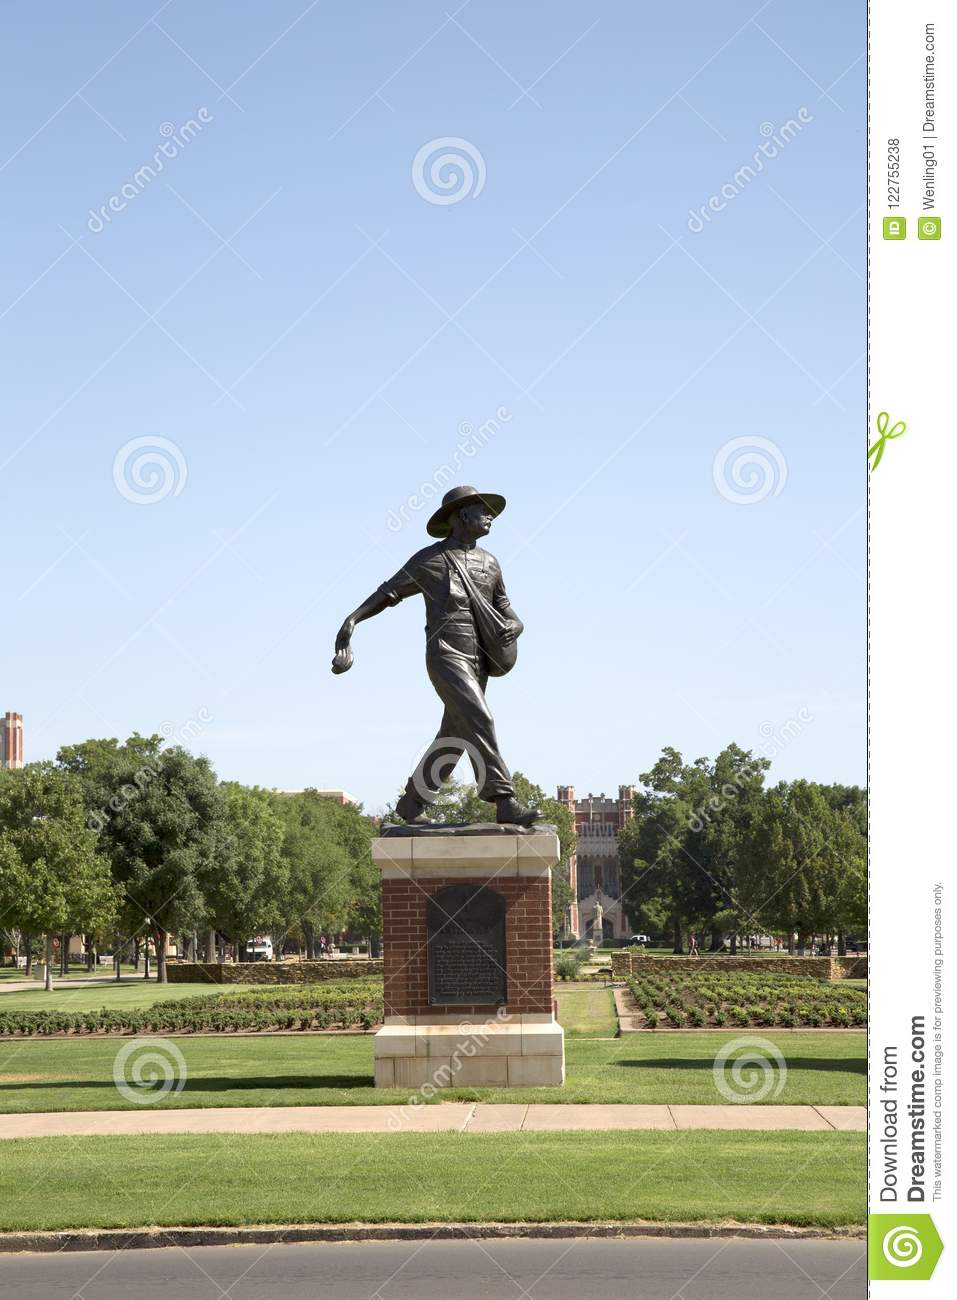 Sculpture of a Sower in University of Oklahoma campus